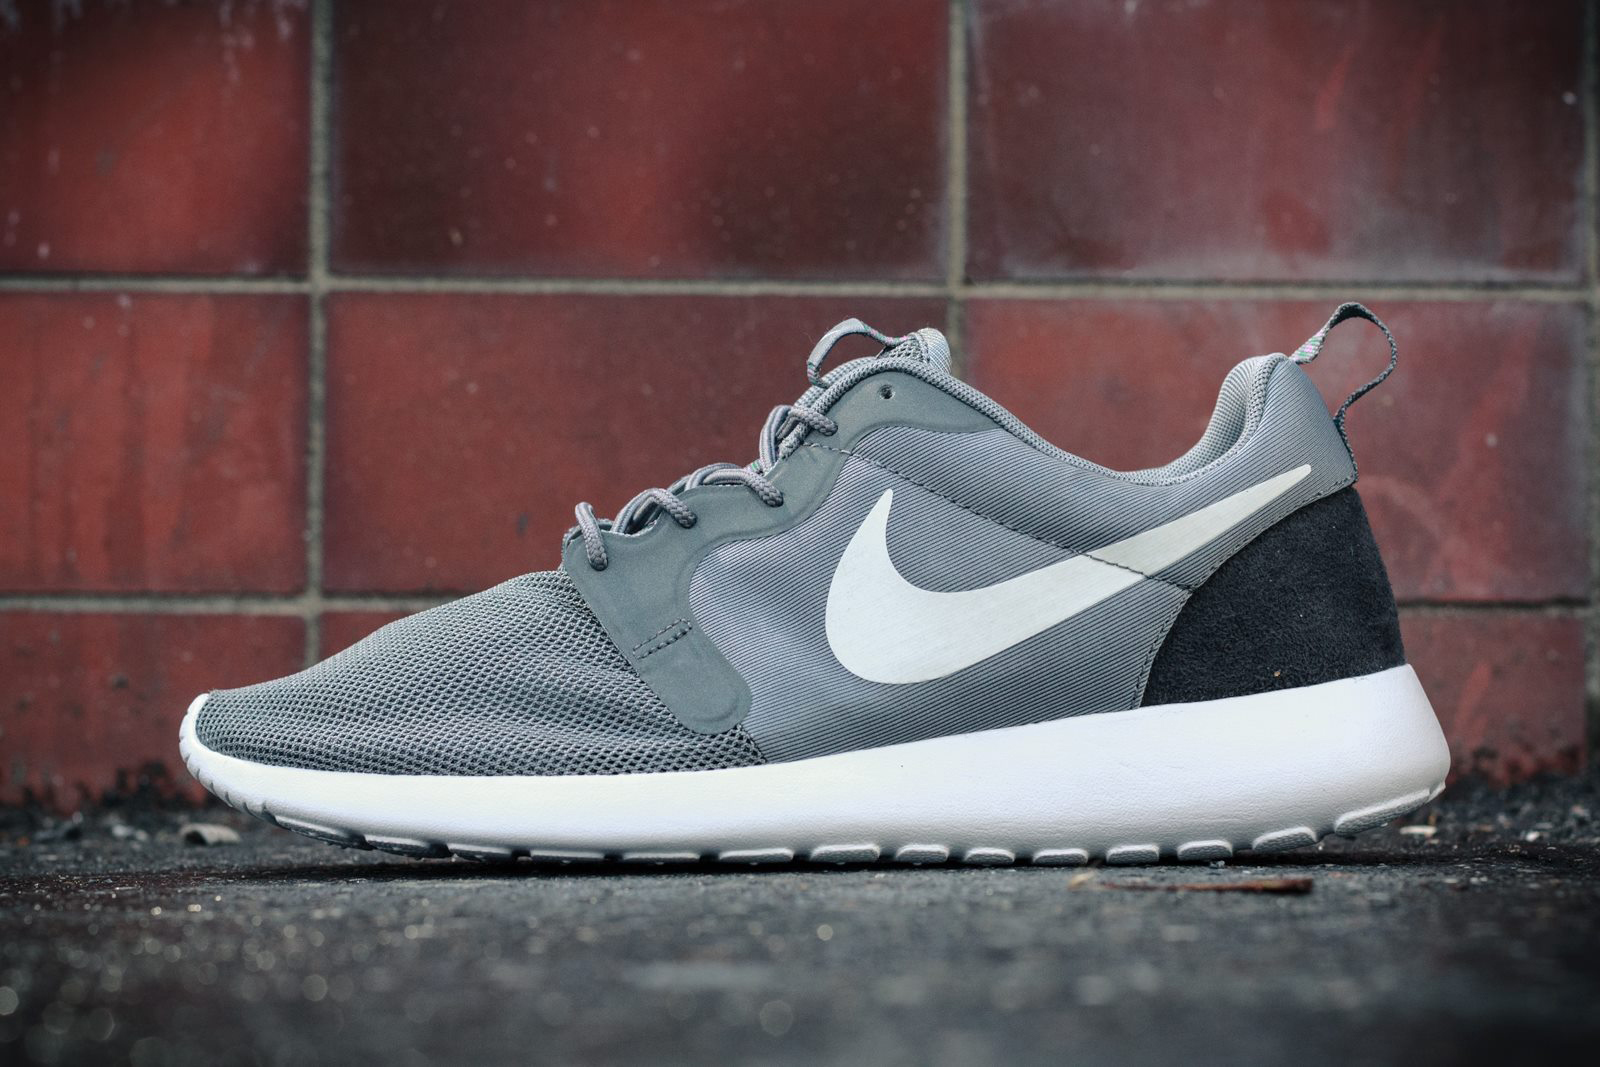 low priced c1e25 e91a5 NIKE ROSHE RUN HYPERFUSENIKE ROSHE RUN HYPERFUSE - Wait! Fashion